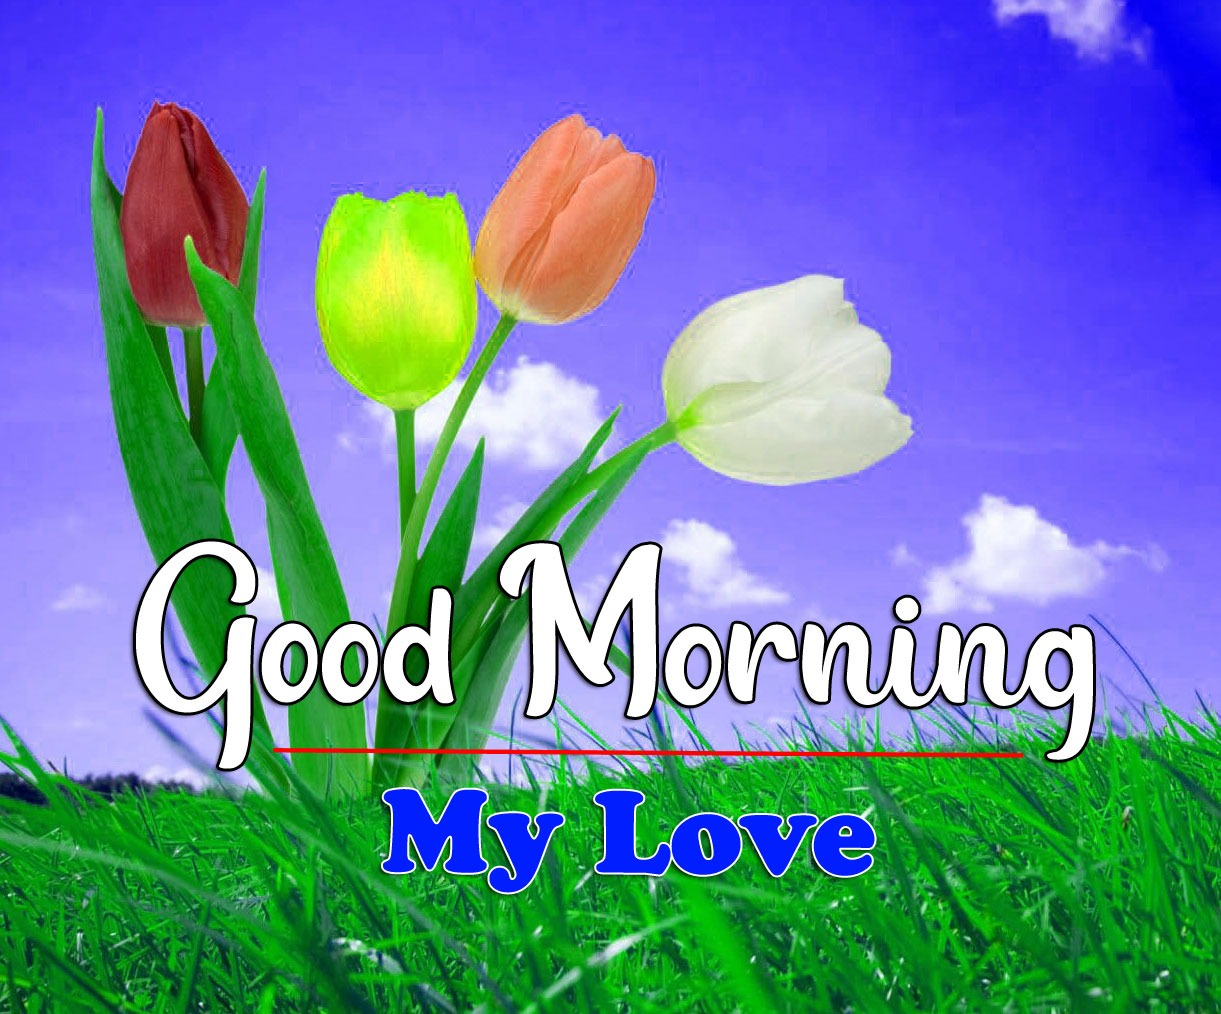 HD Latest Good Morning Photo With Flower